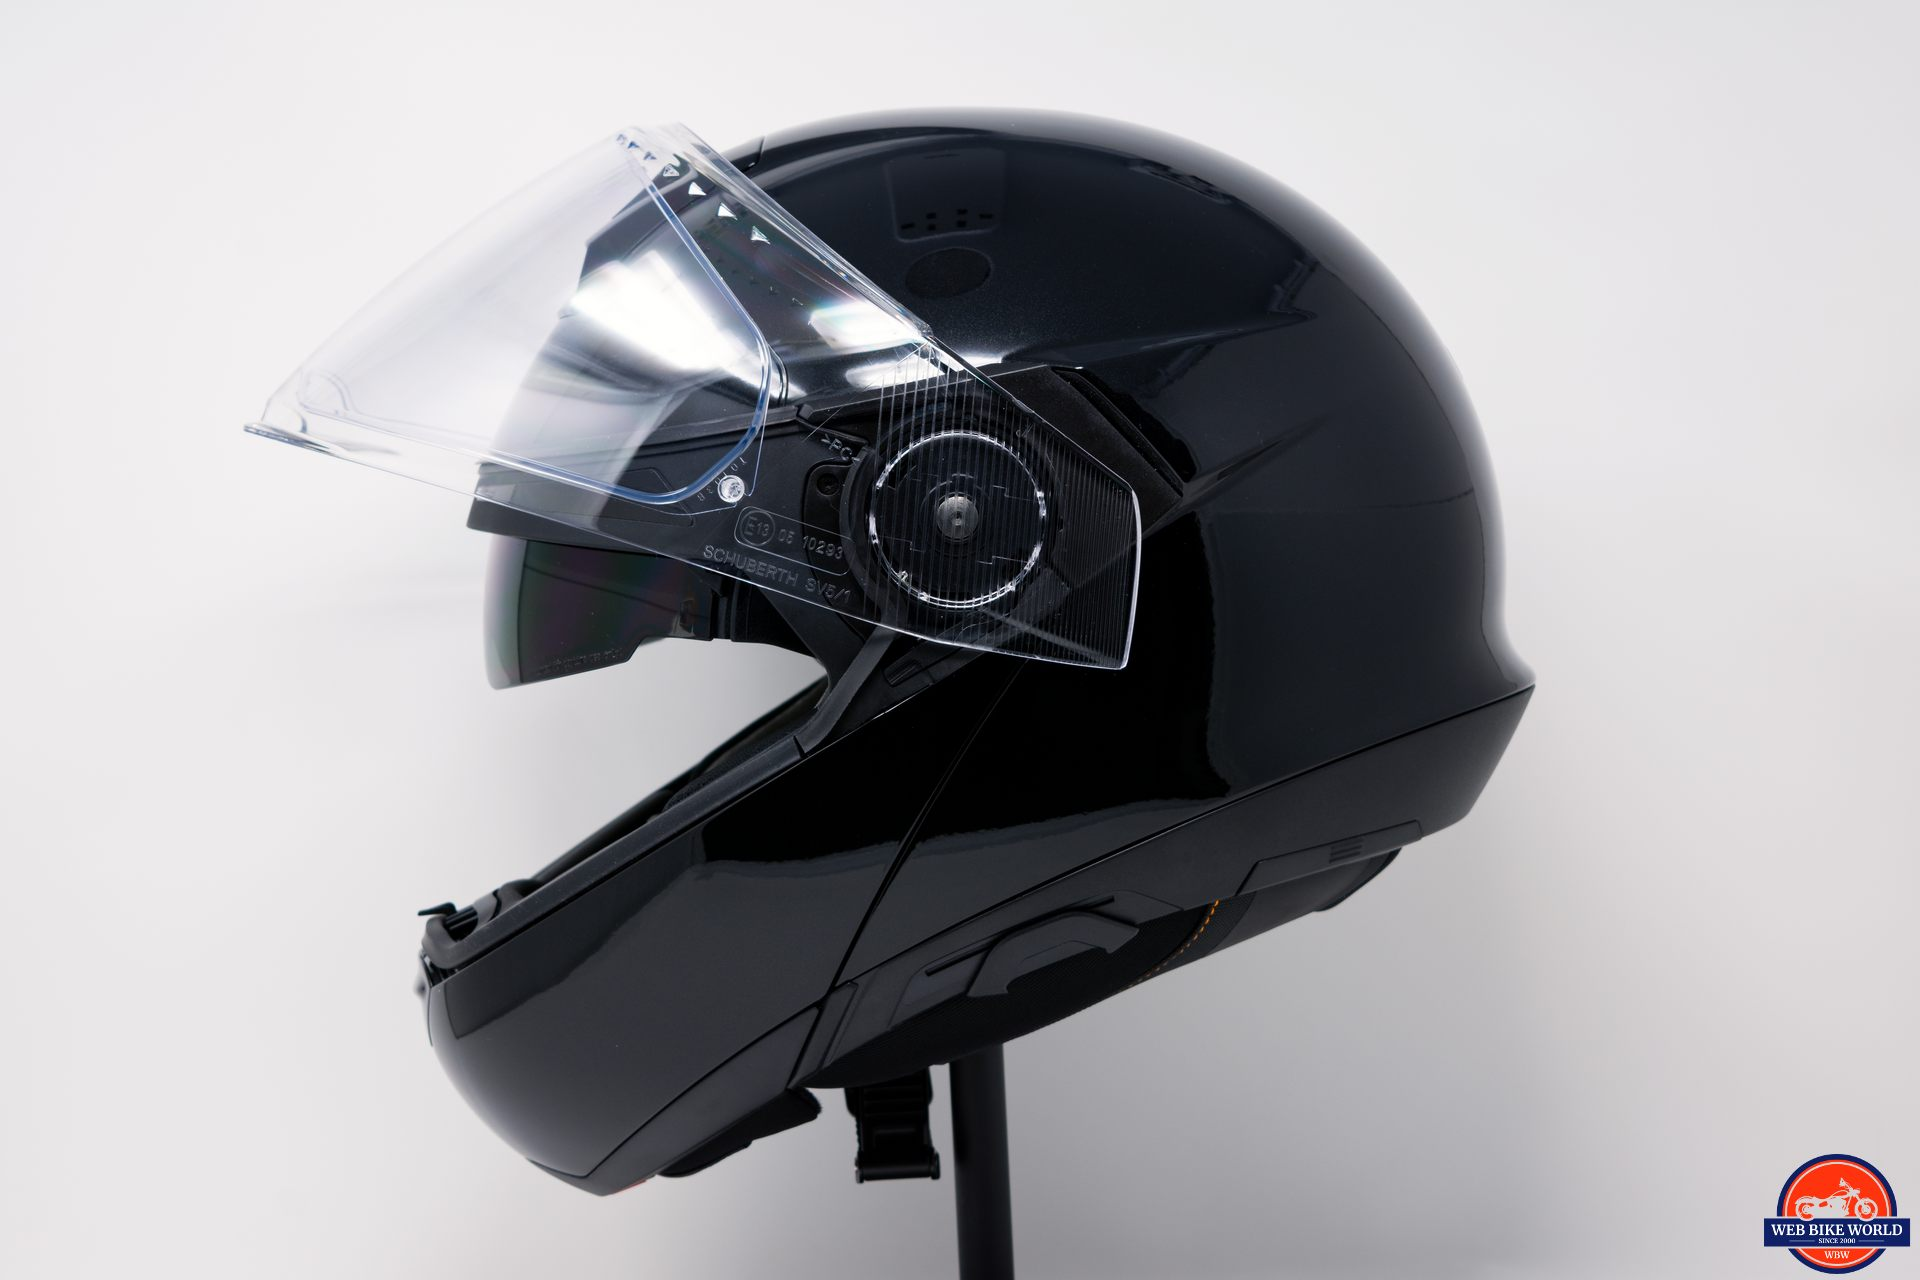 SCHUBERTH C4 with raised visor